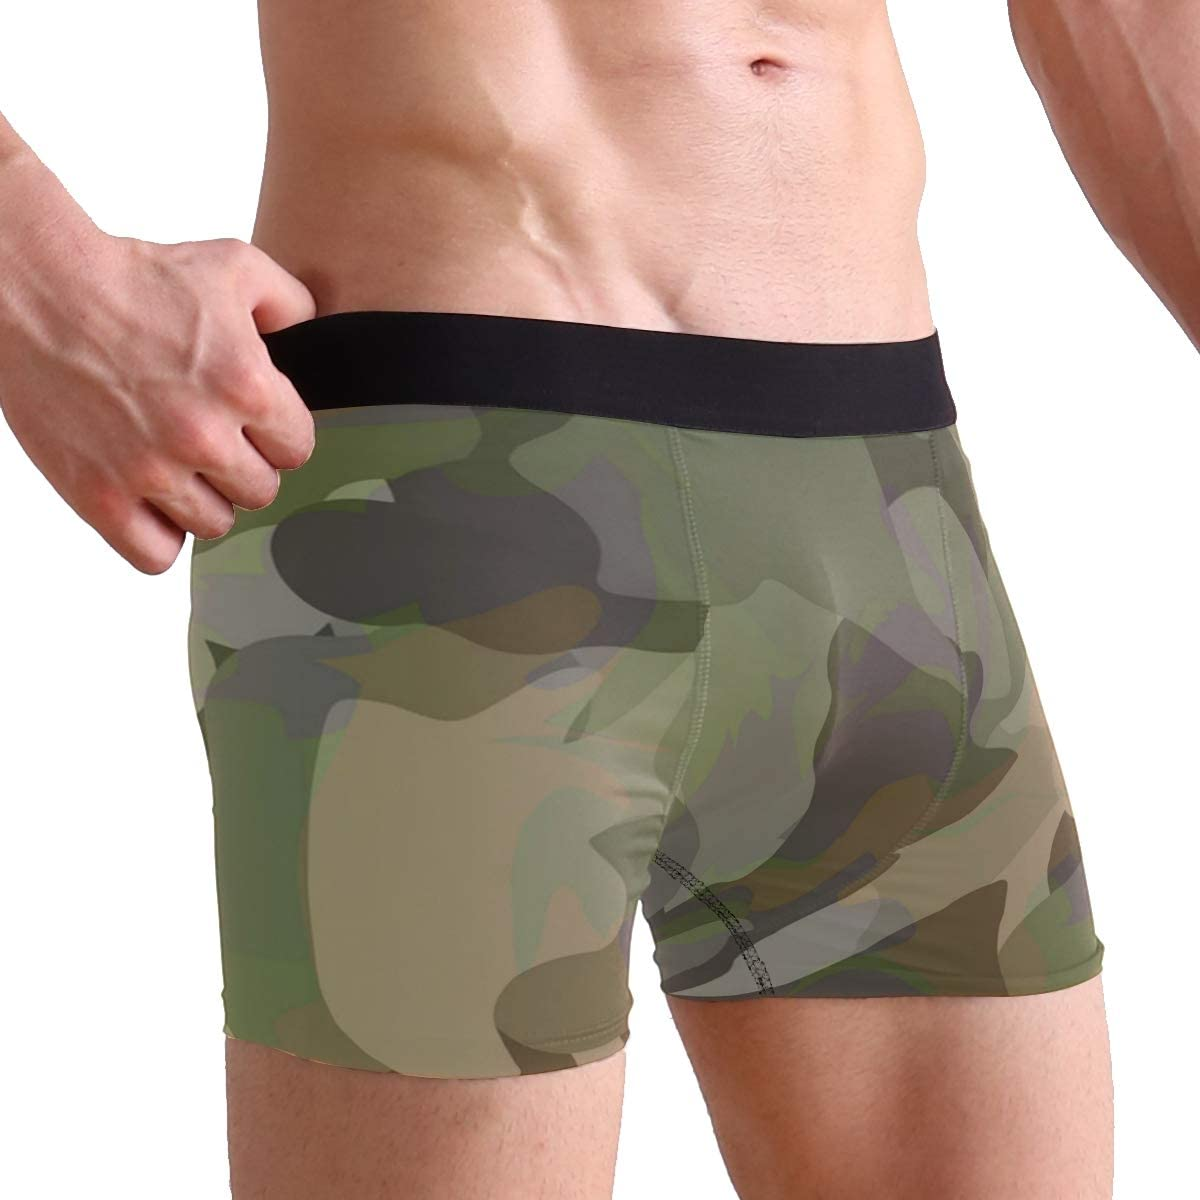 Toddy Astridd Army Ridge Reaper Camo Pattern Mens Sports Performance Shorts Underwear 2 Pack